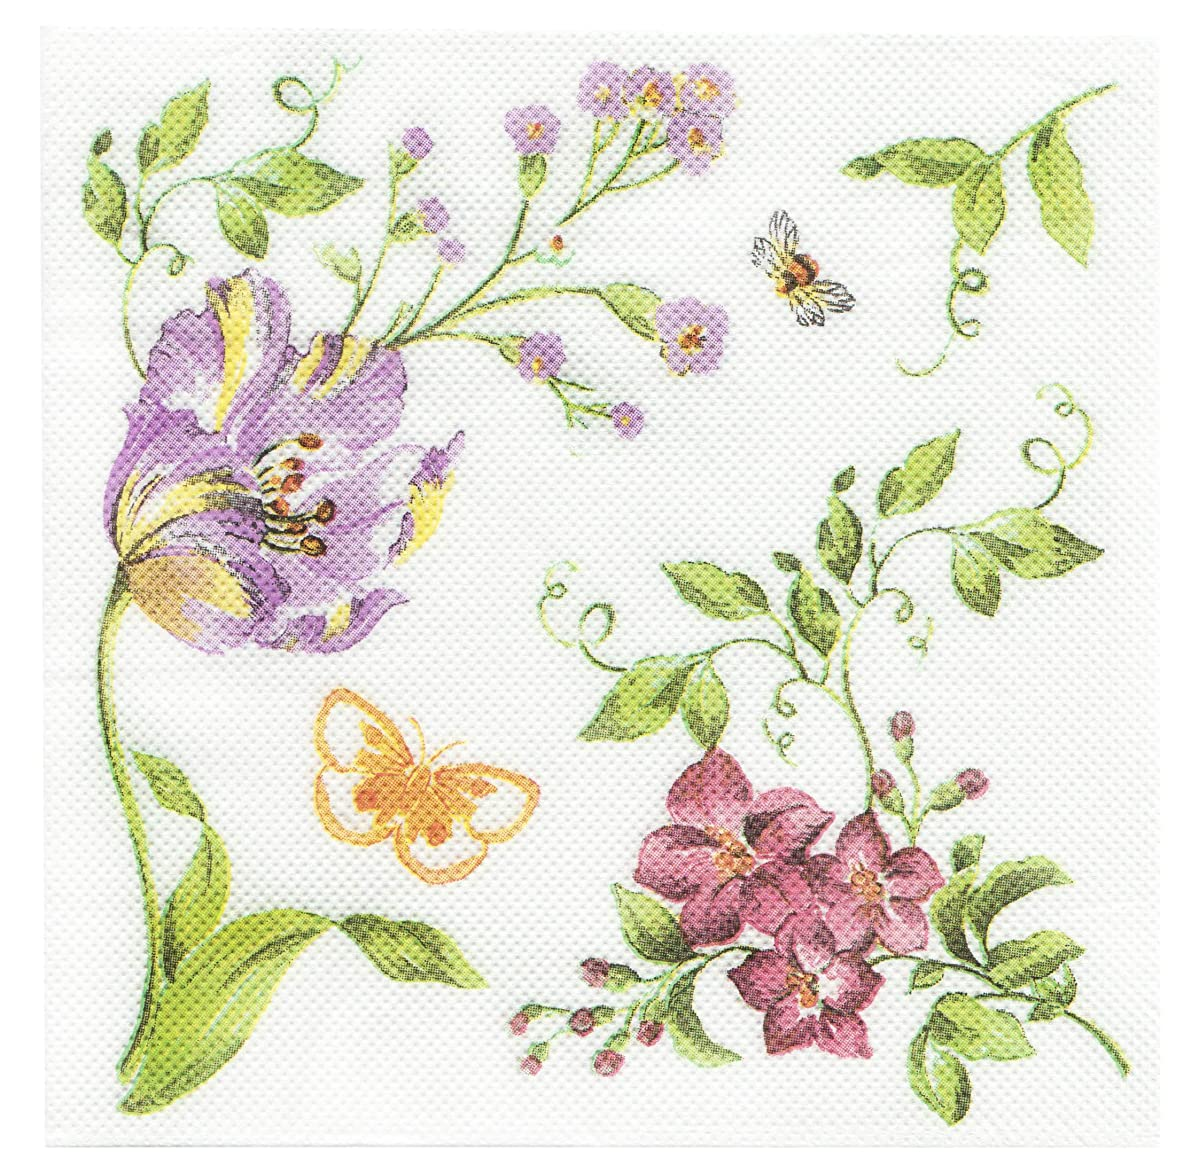 Salome Idea 60 Counts Shower Tea Party Birthday or Wedding Party Napkins,Romatic Floral Napkins(Romatic Floral 30)